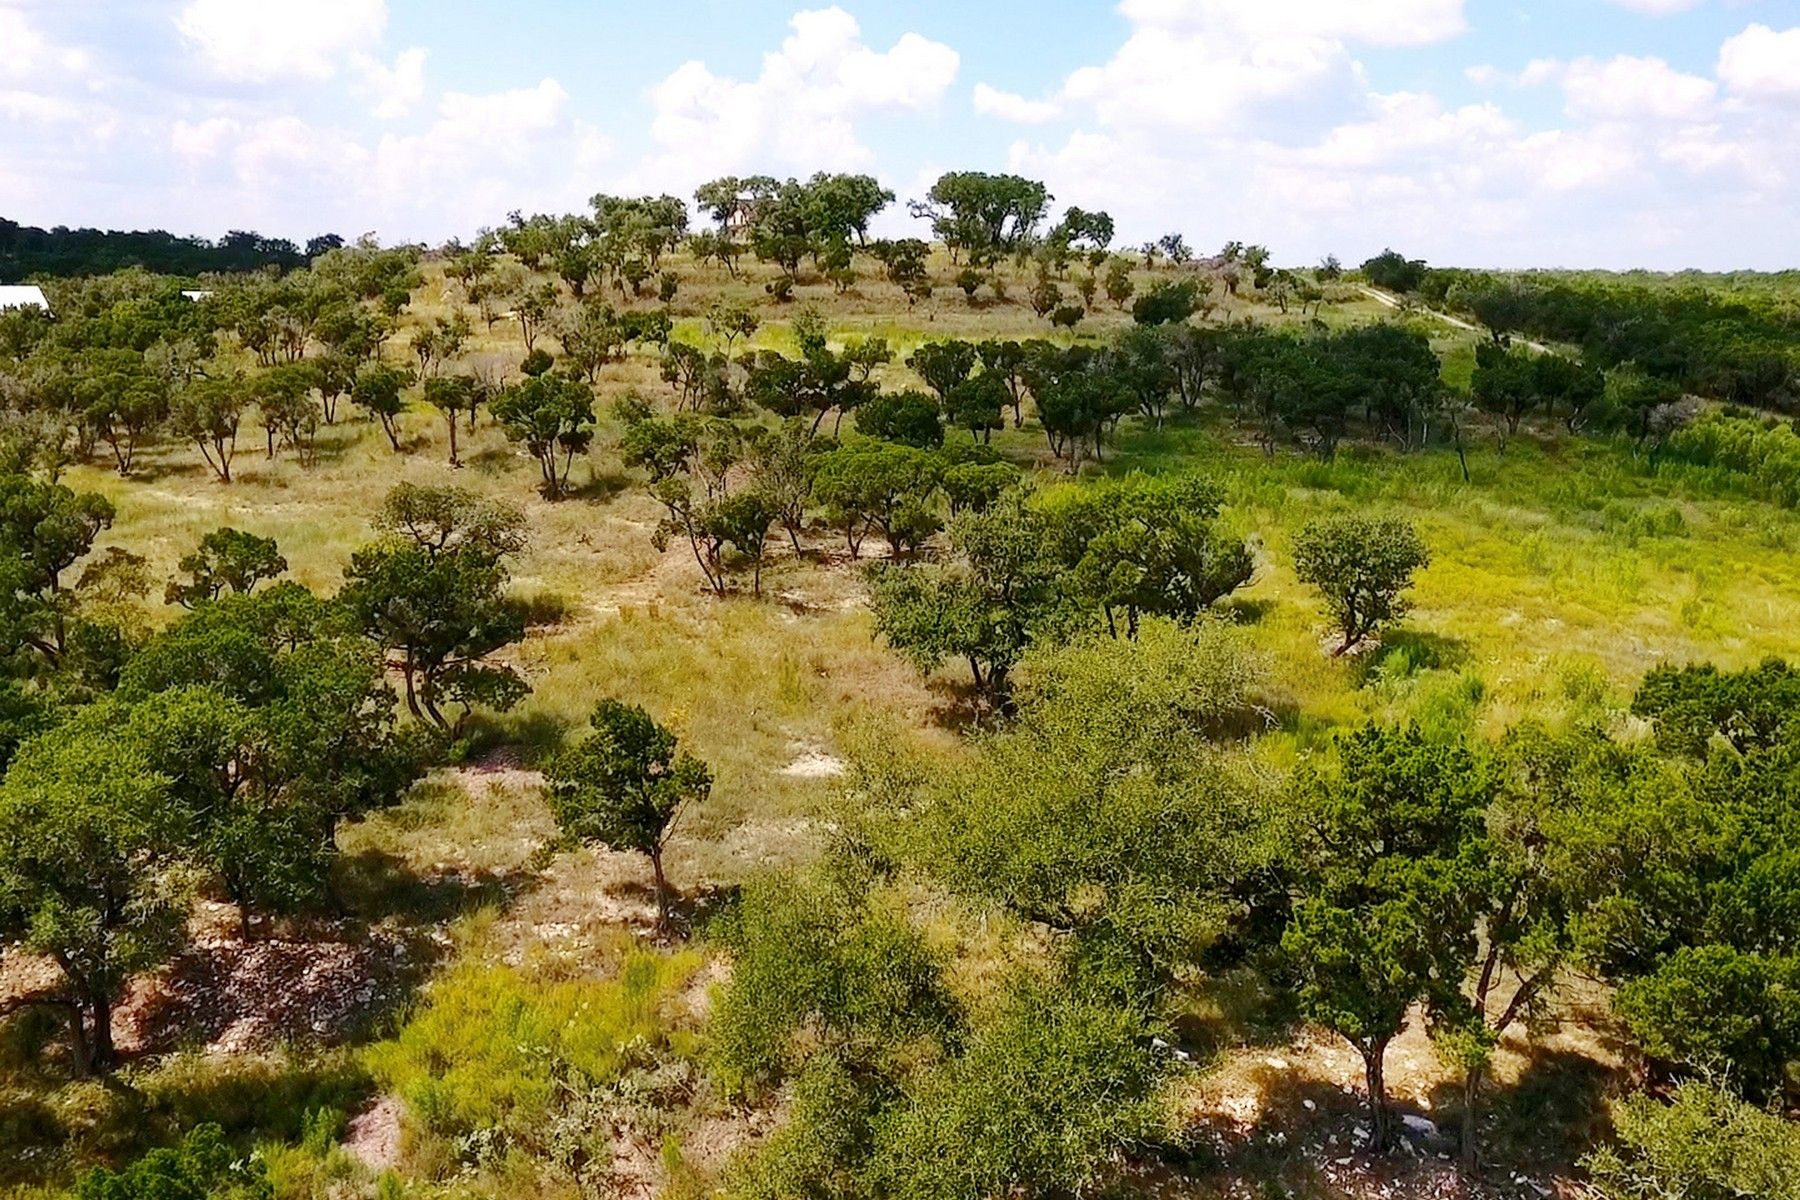 Land for Sale at Unique Land Value Minutes to Austin Lot 10 Old Baldy Trl Dripping Springs, Texas 78620 United States